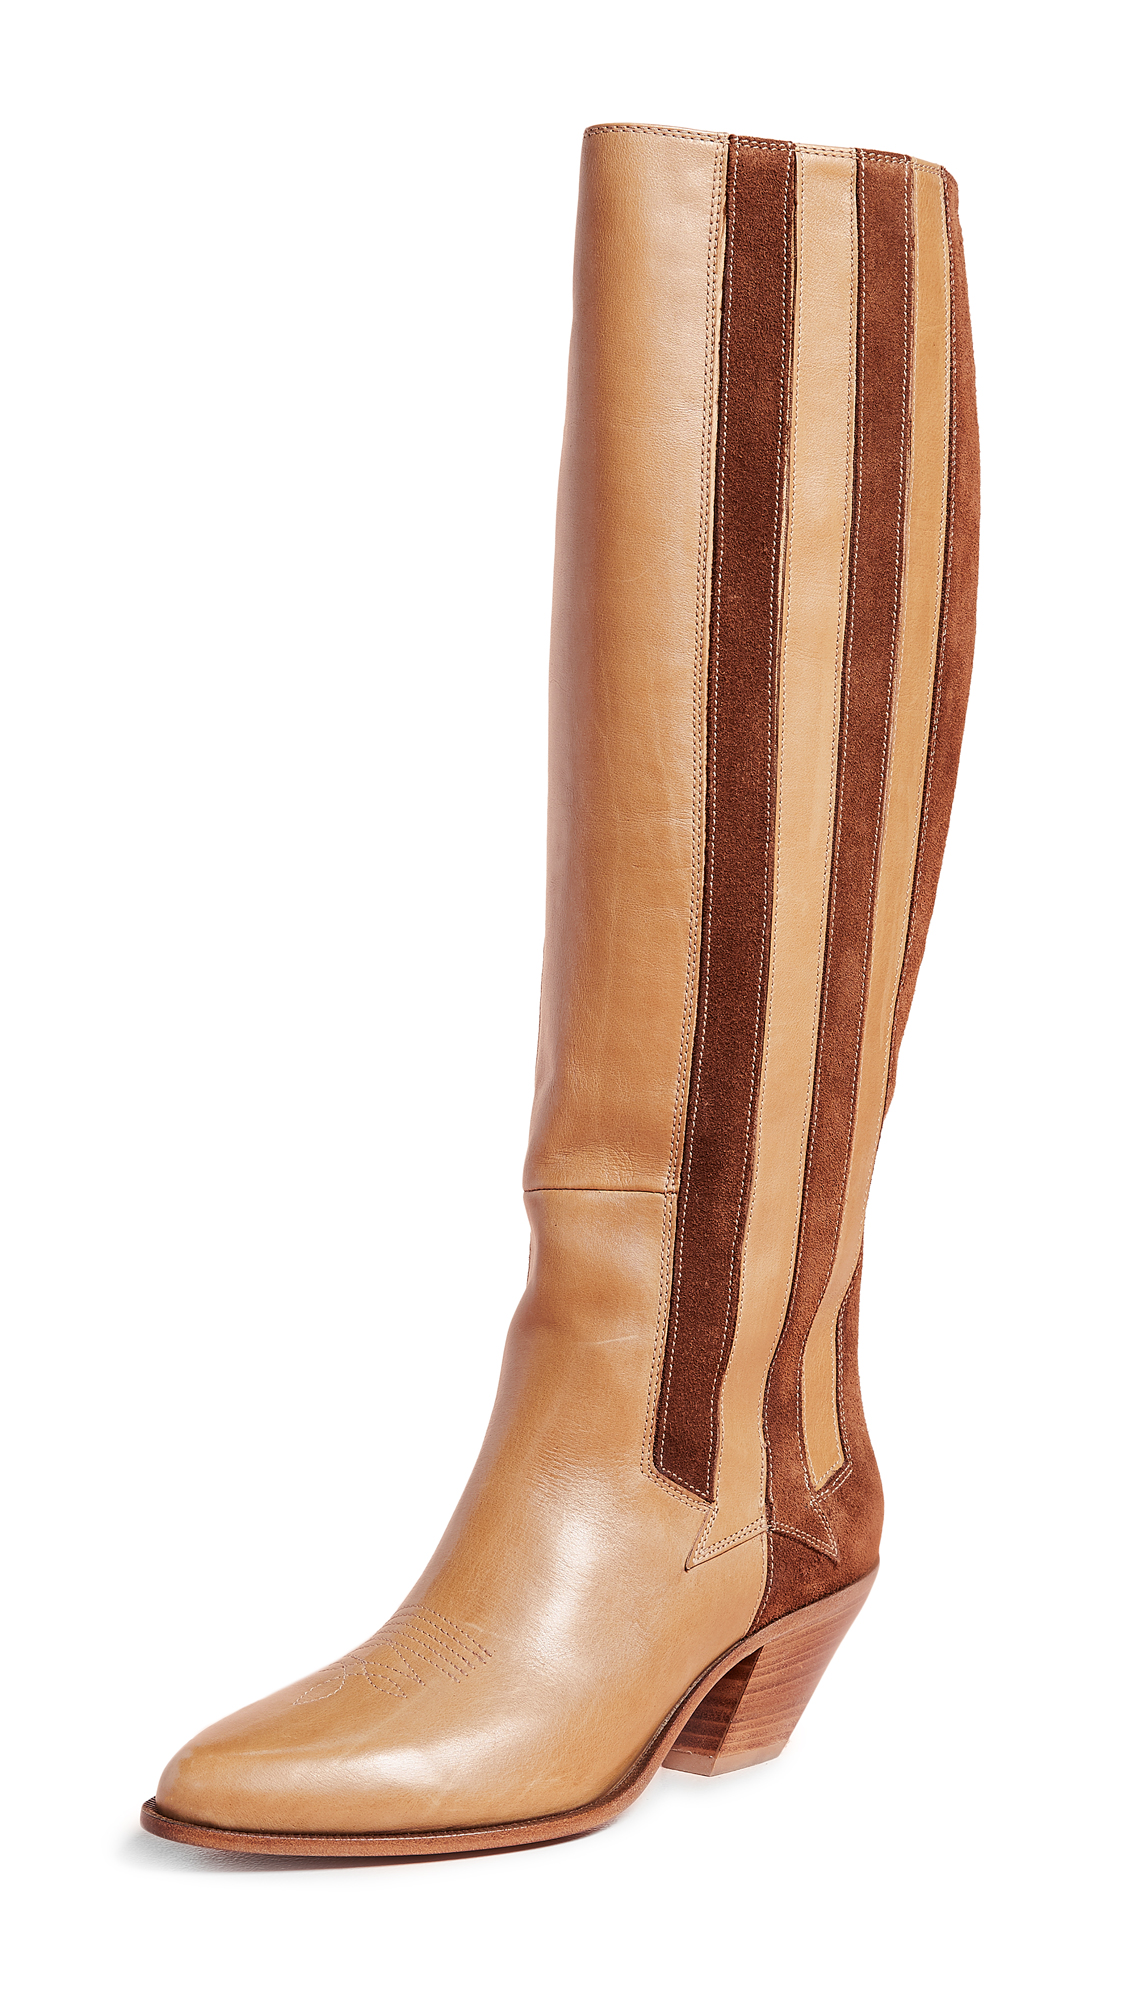 Golden Goose Nebbia Boots - Brown